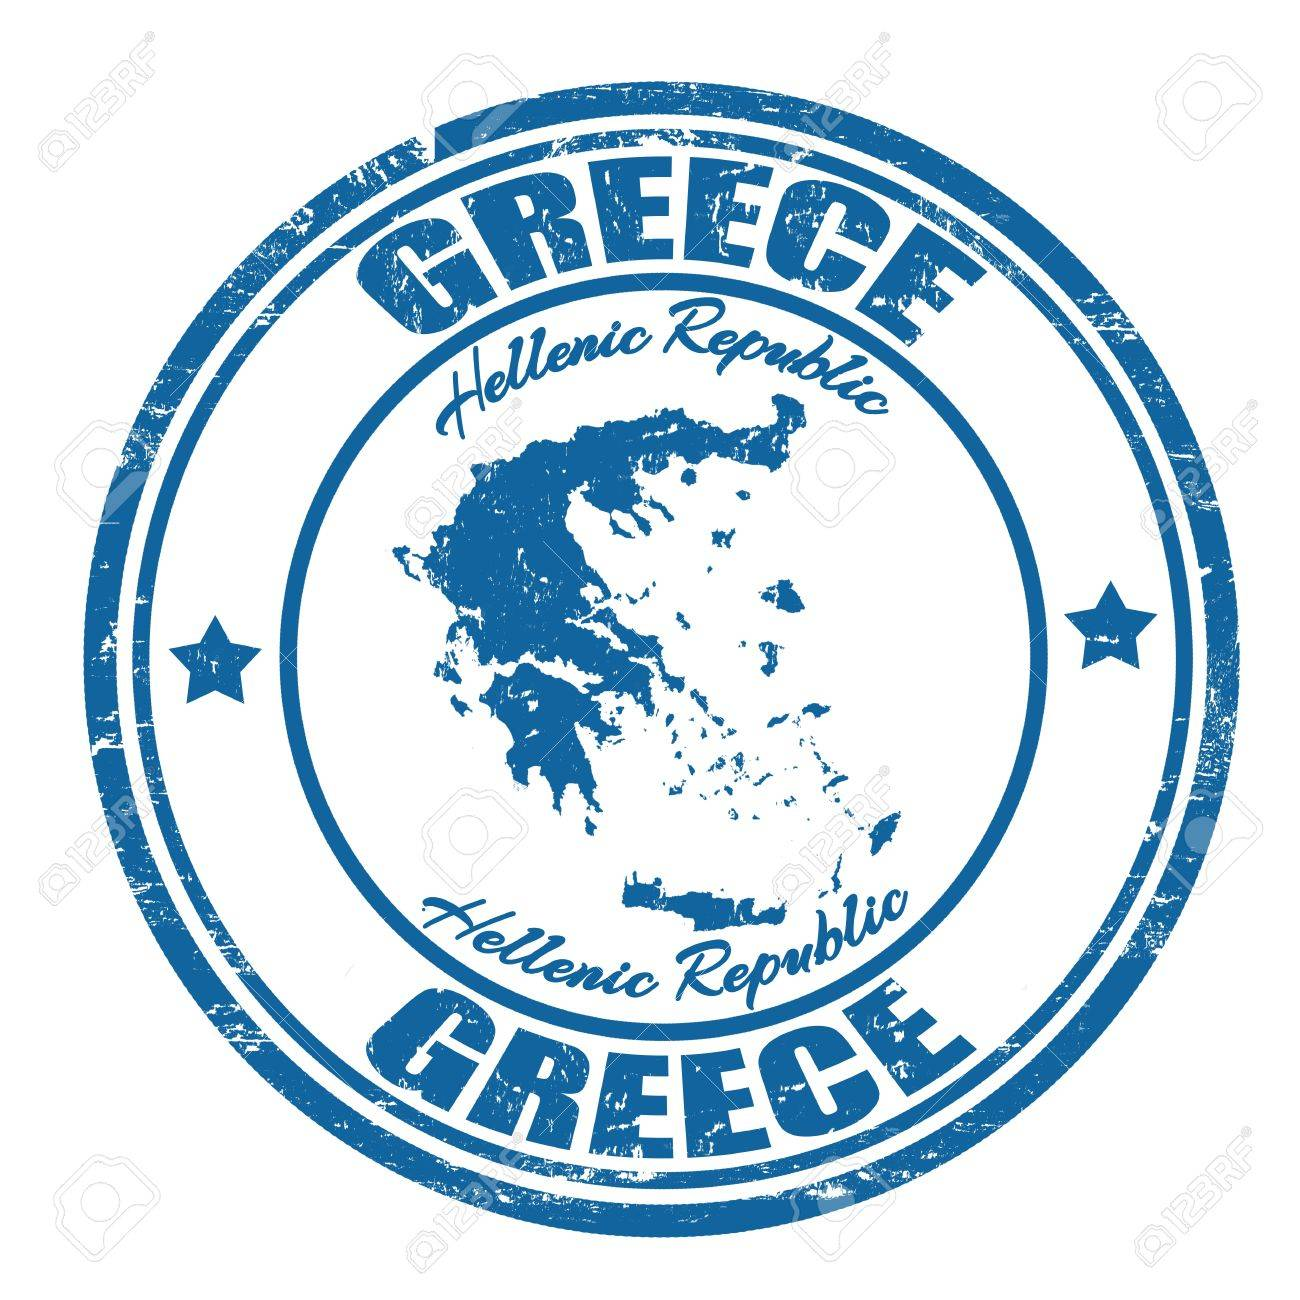 Grunge rubber stamp with the name and map of Greece, vector illustration Stock Vector - 21313881